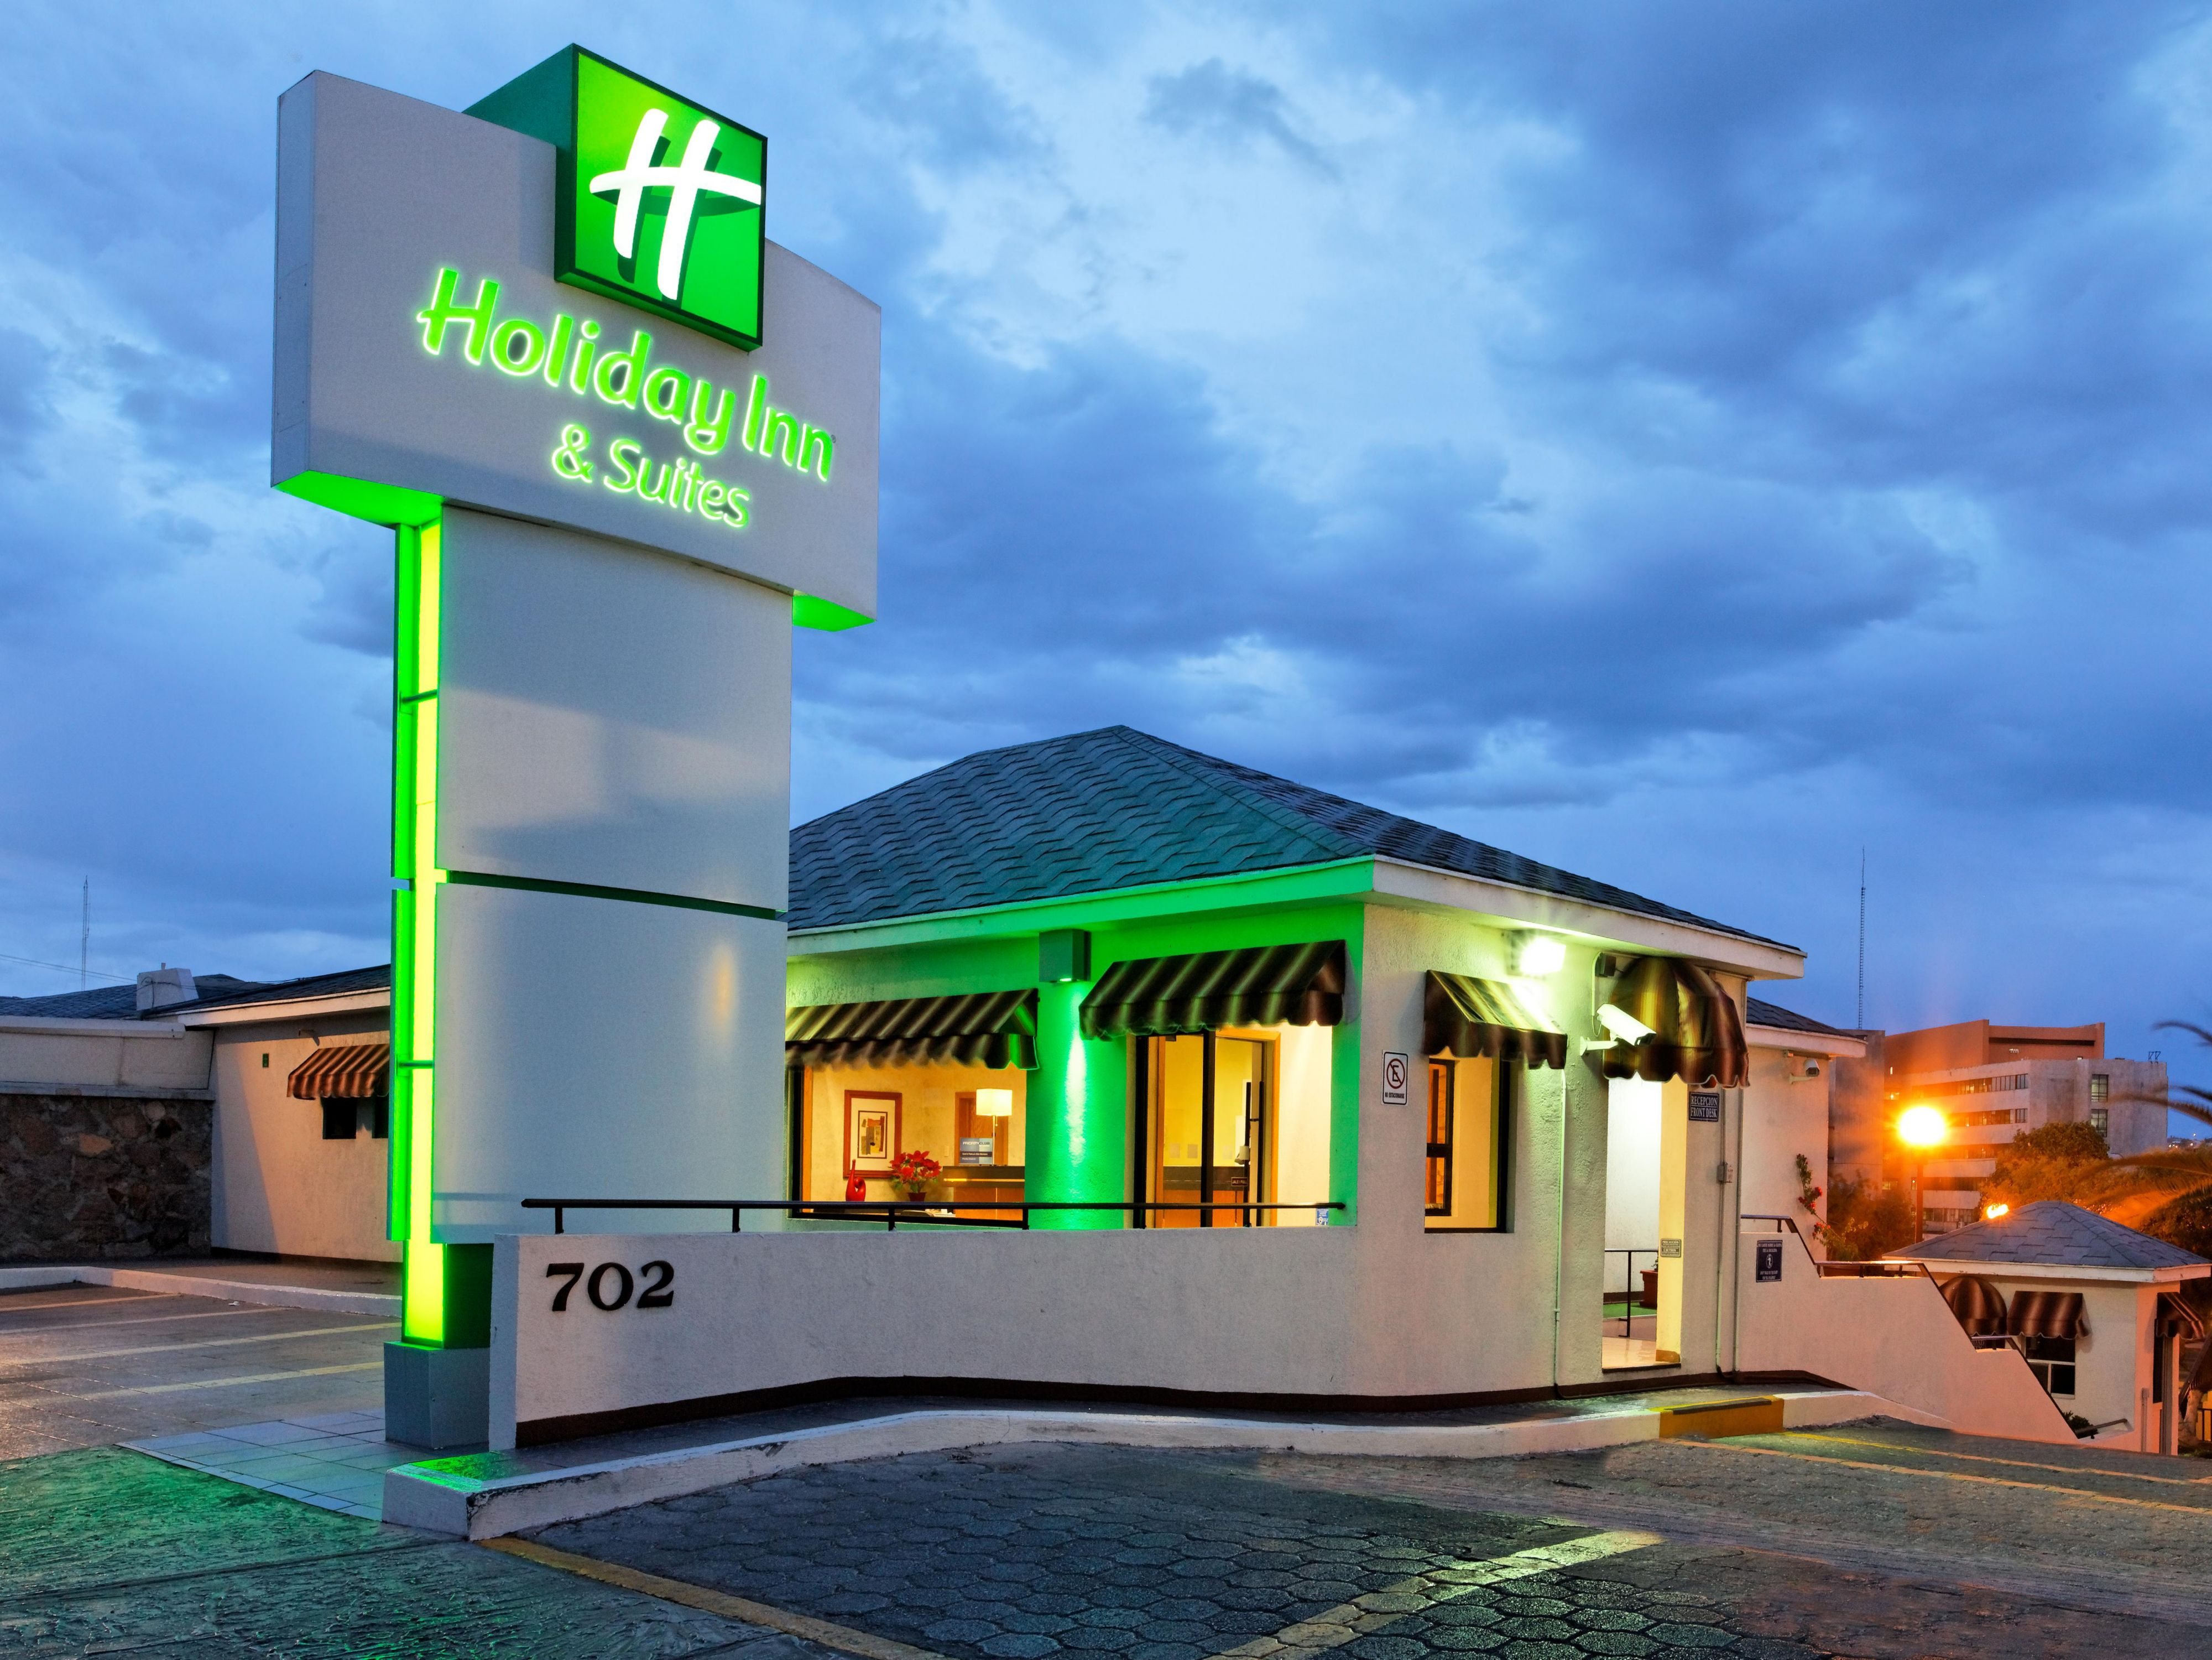 Holiday inn hotel suites chihuahua hotel by ihg for Hotel hotel hotel